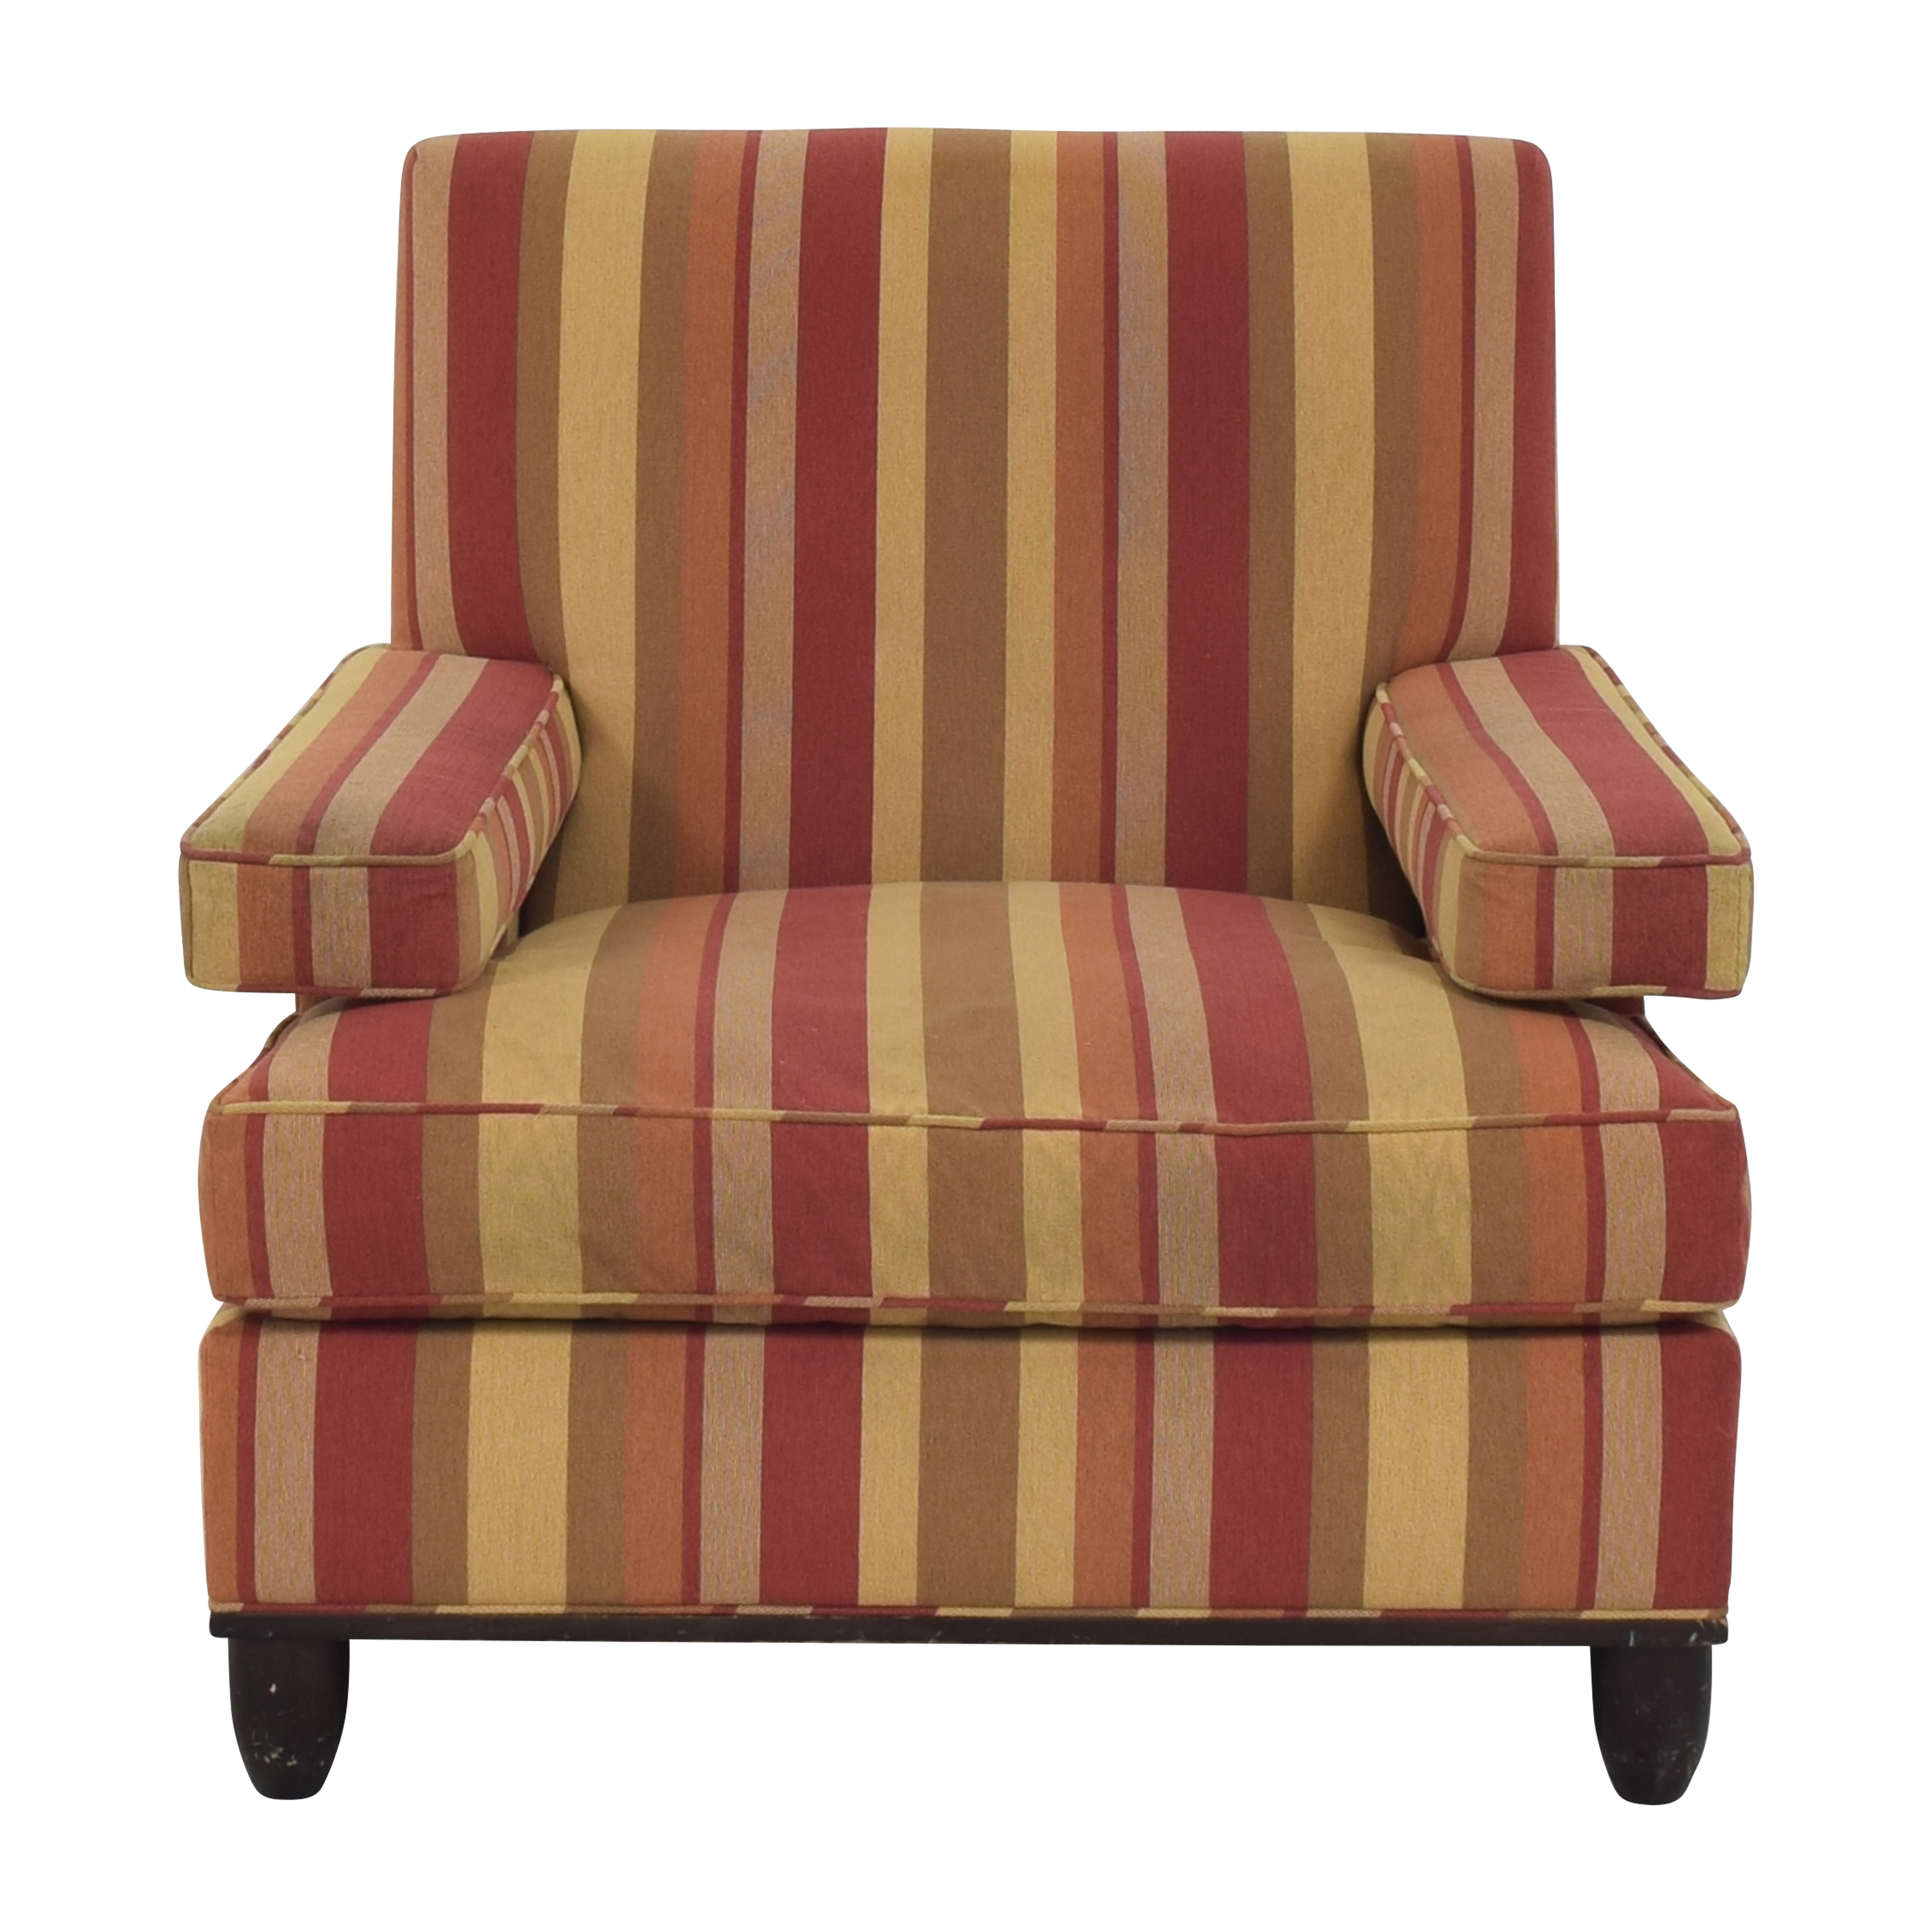 Bright Bright Upholstered Club Chair price